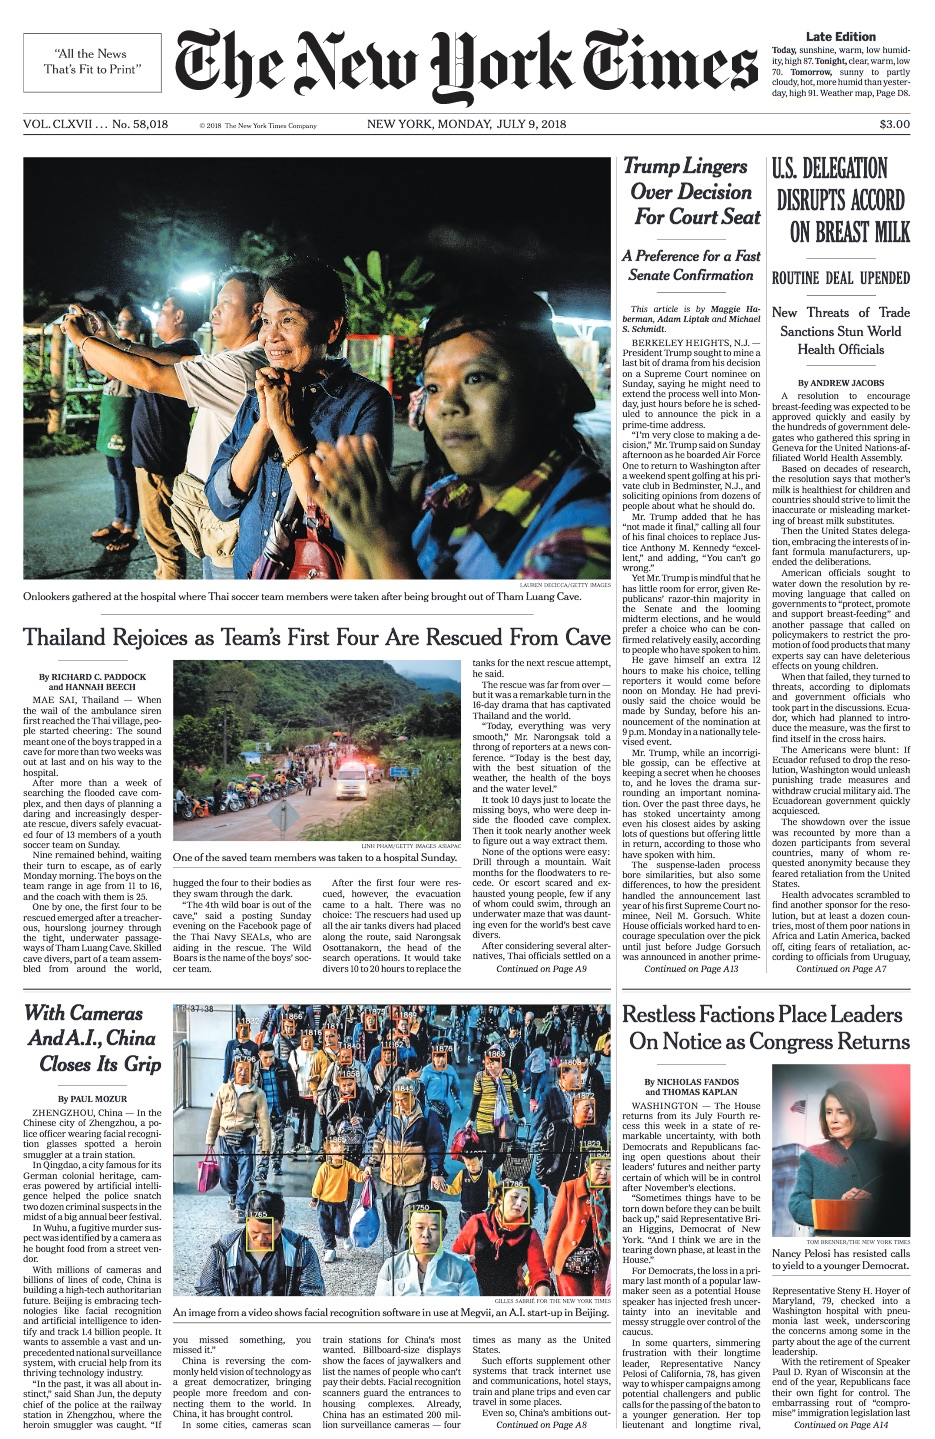 NYT_FrontPage_070918.jpg